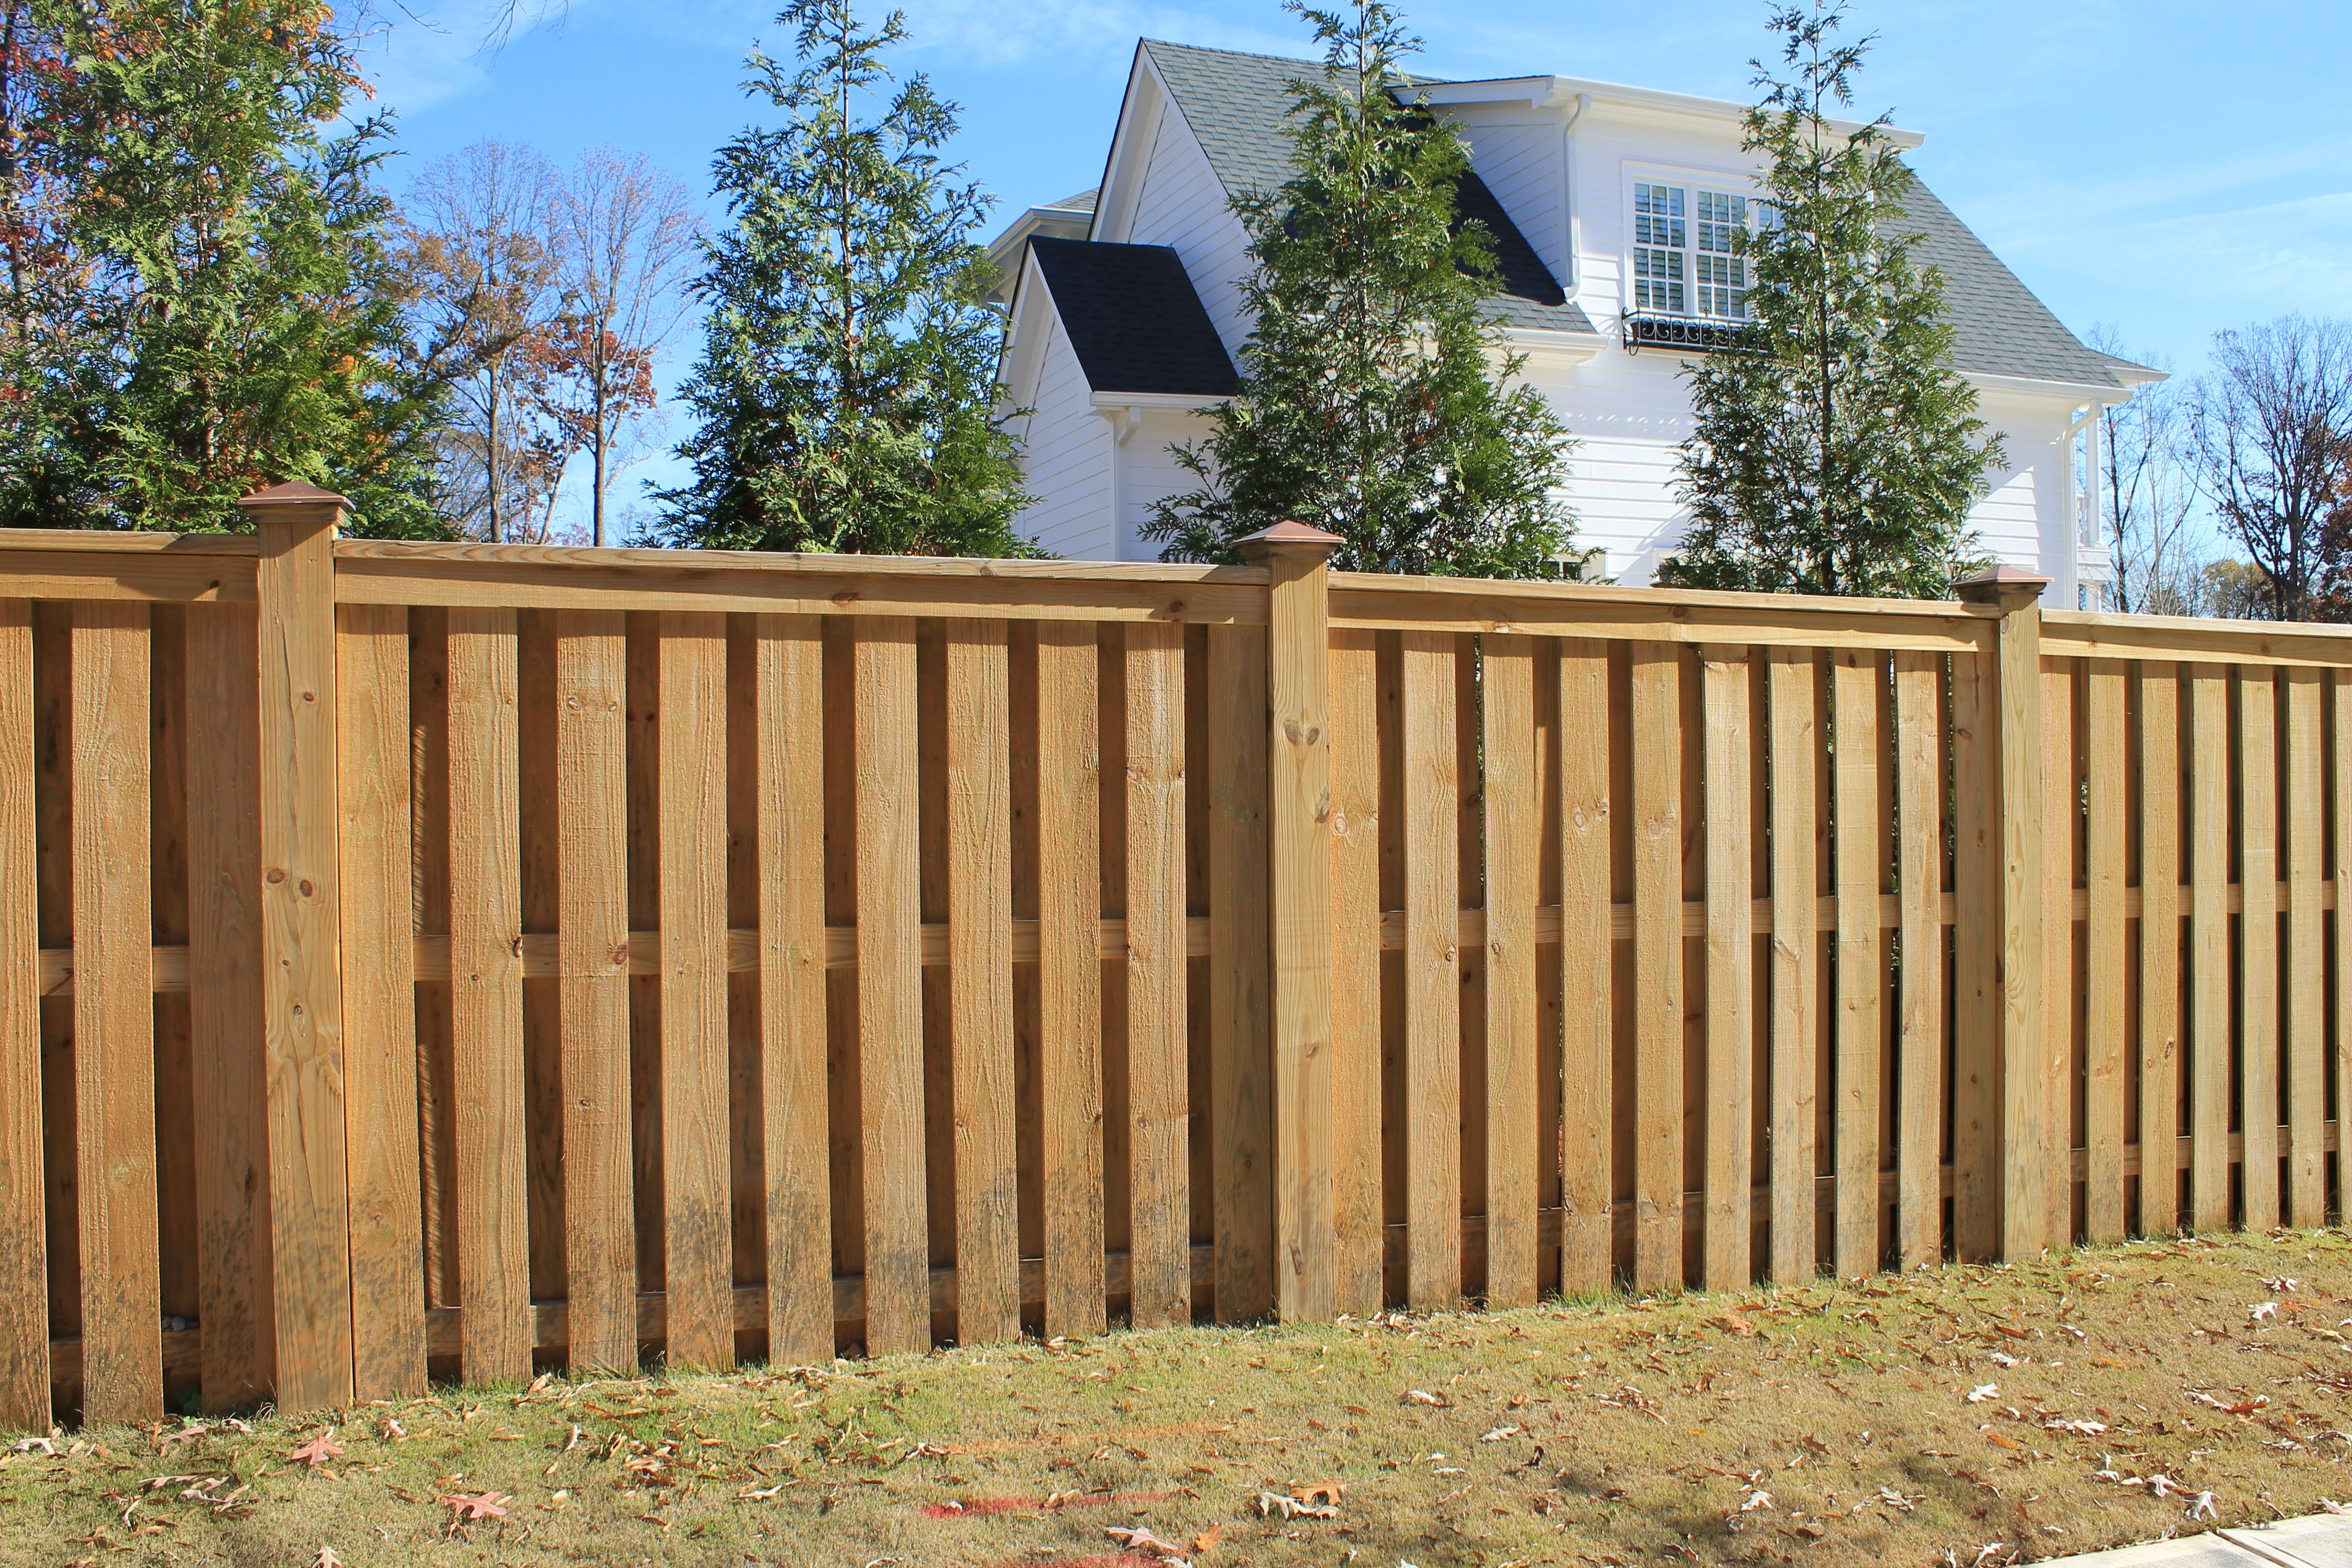 Shadowbox Fence Designs Search Wood Fence Design Privacy